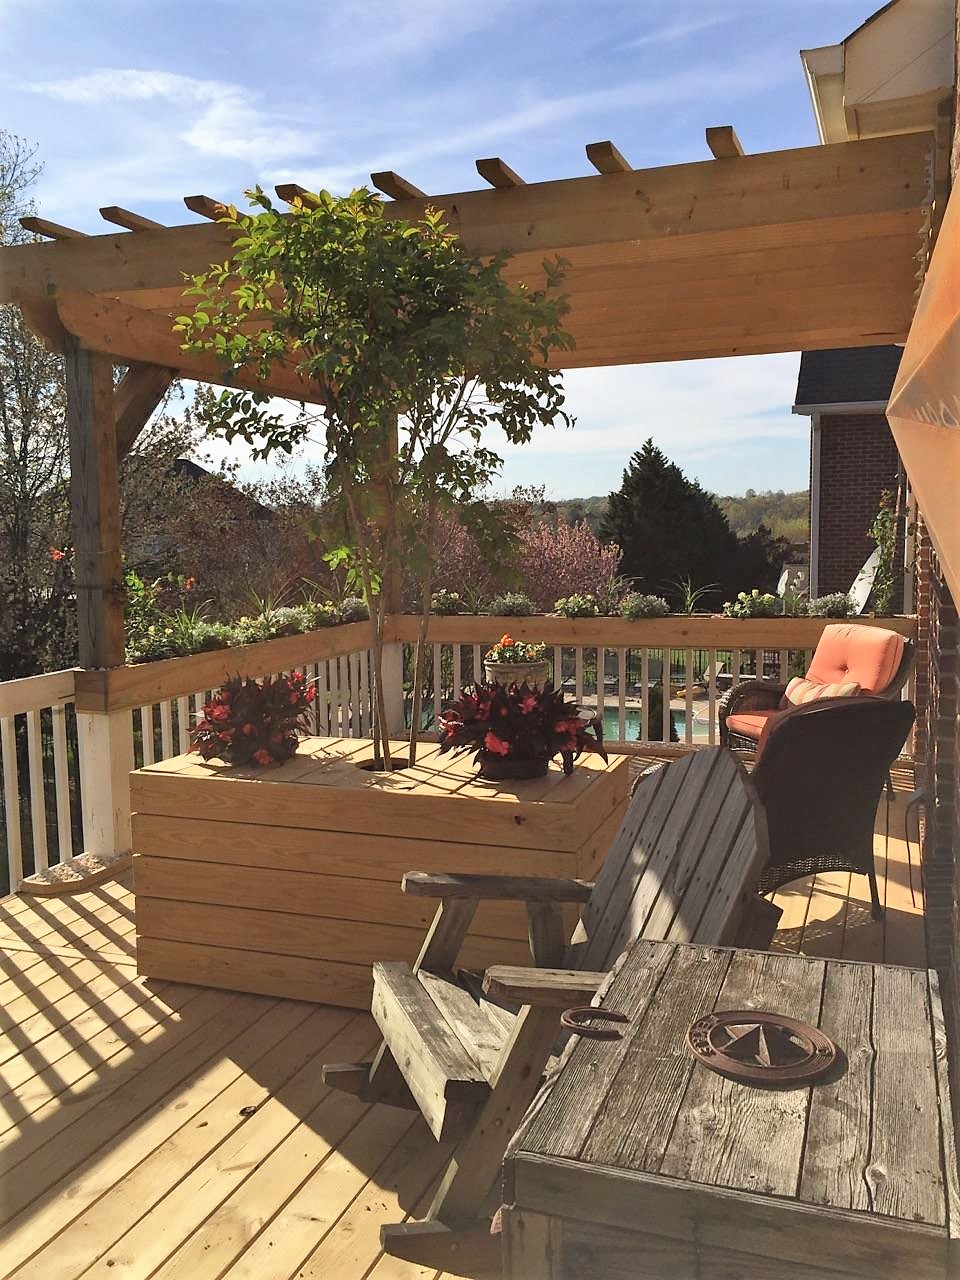 Pergola, Planters, Deck Boards (Johnson City, Tn)